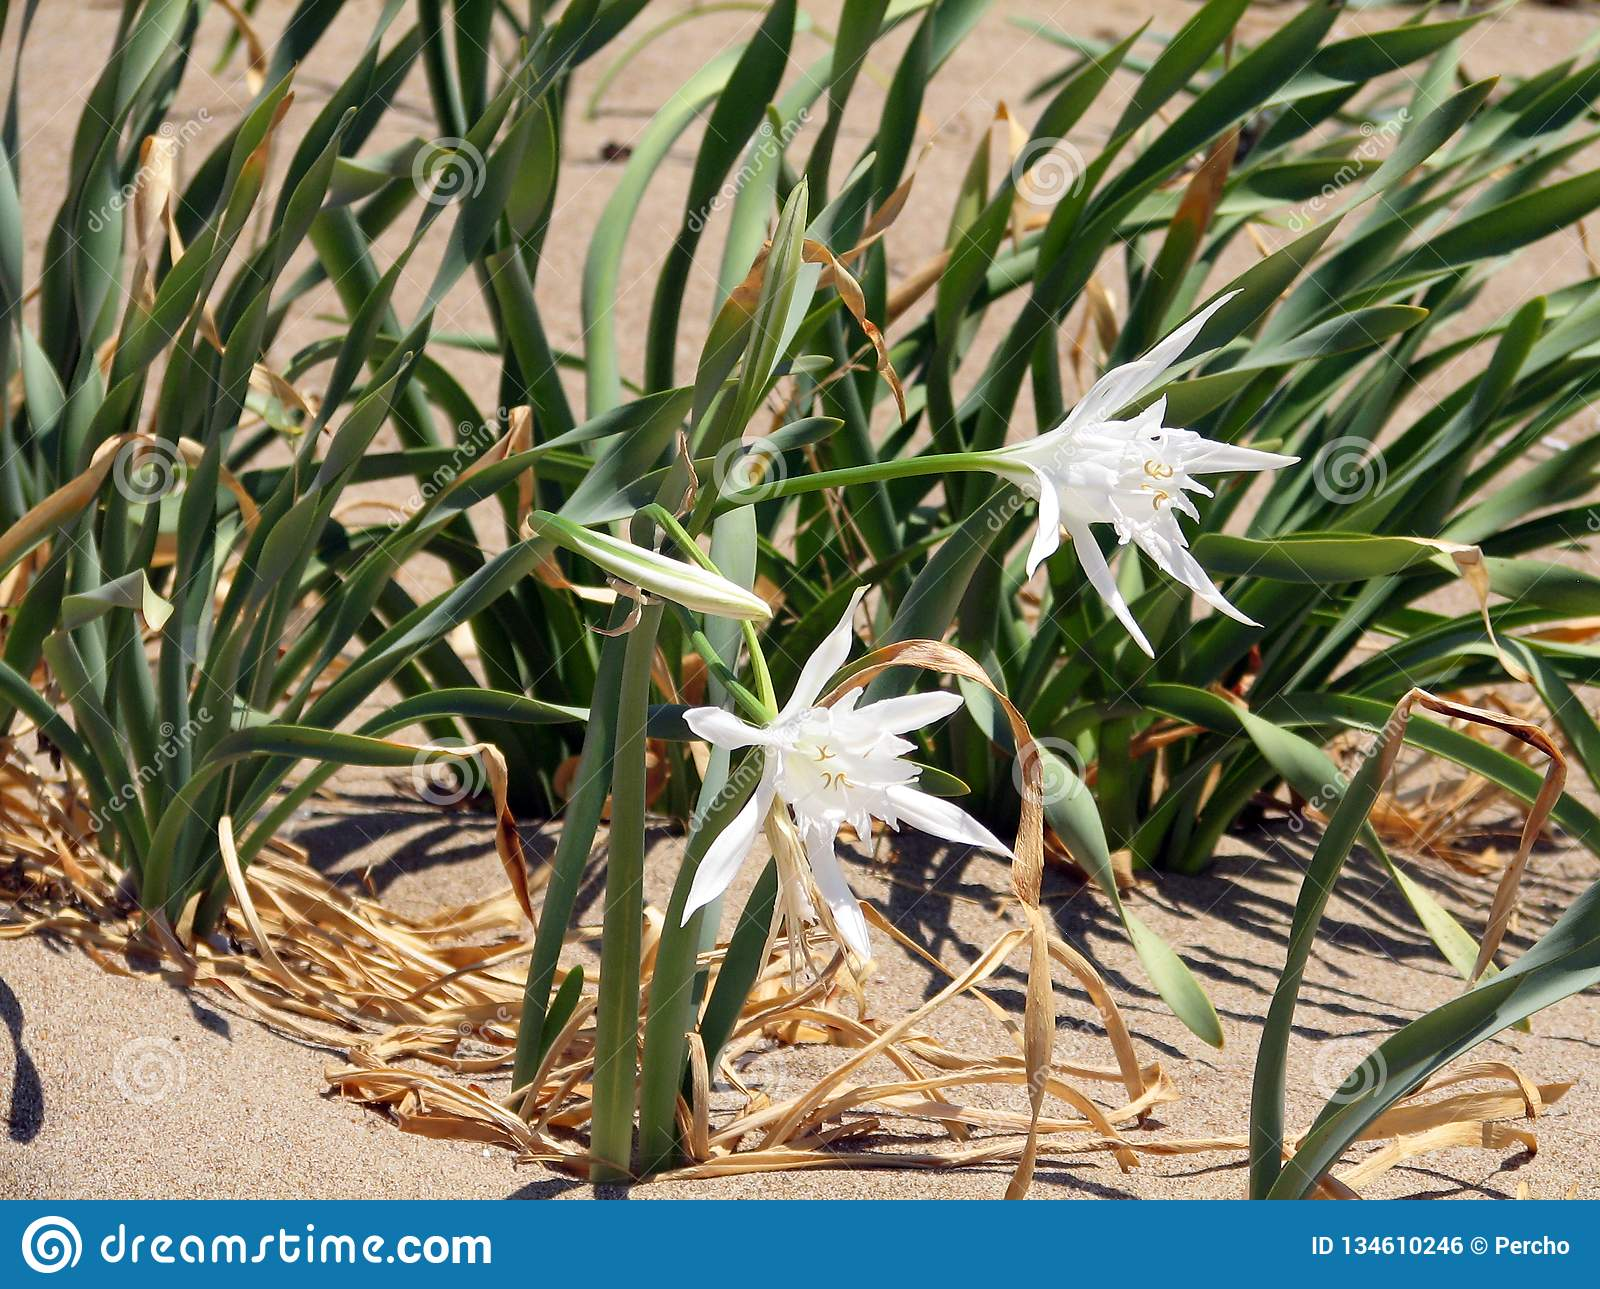 Flowers of sand lily